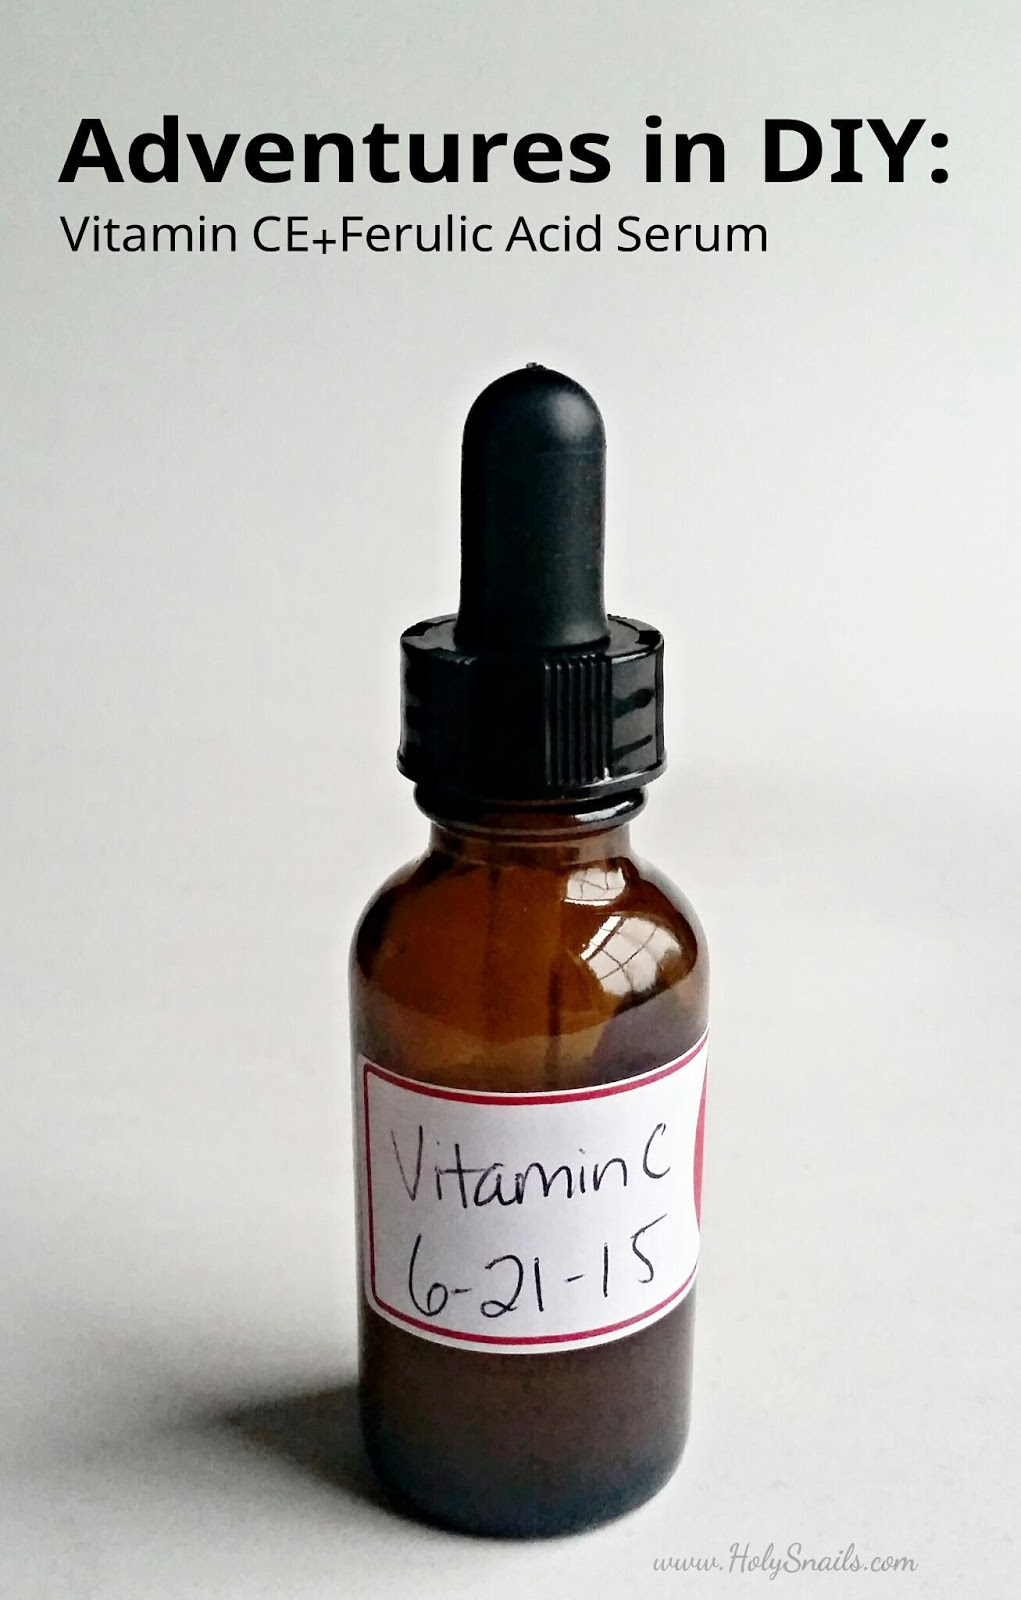 Adventures in DIY:  Vitamin C E + Ferulic Acid Serum